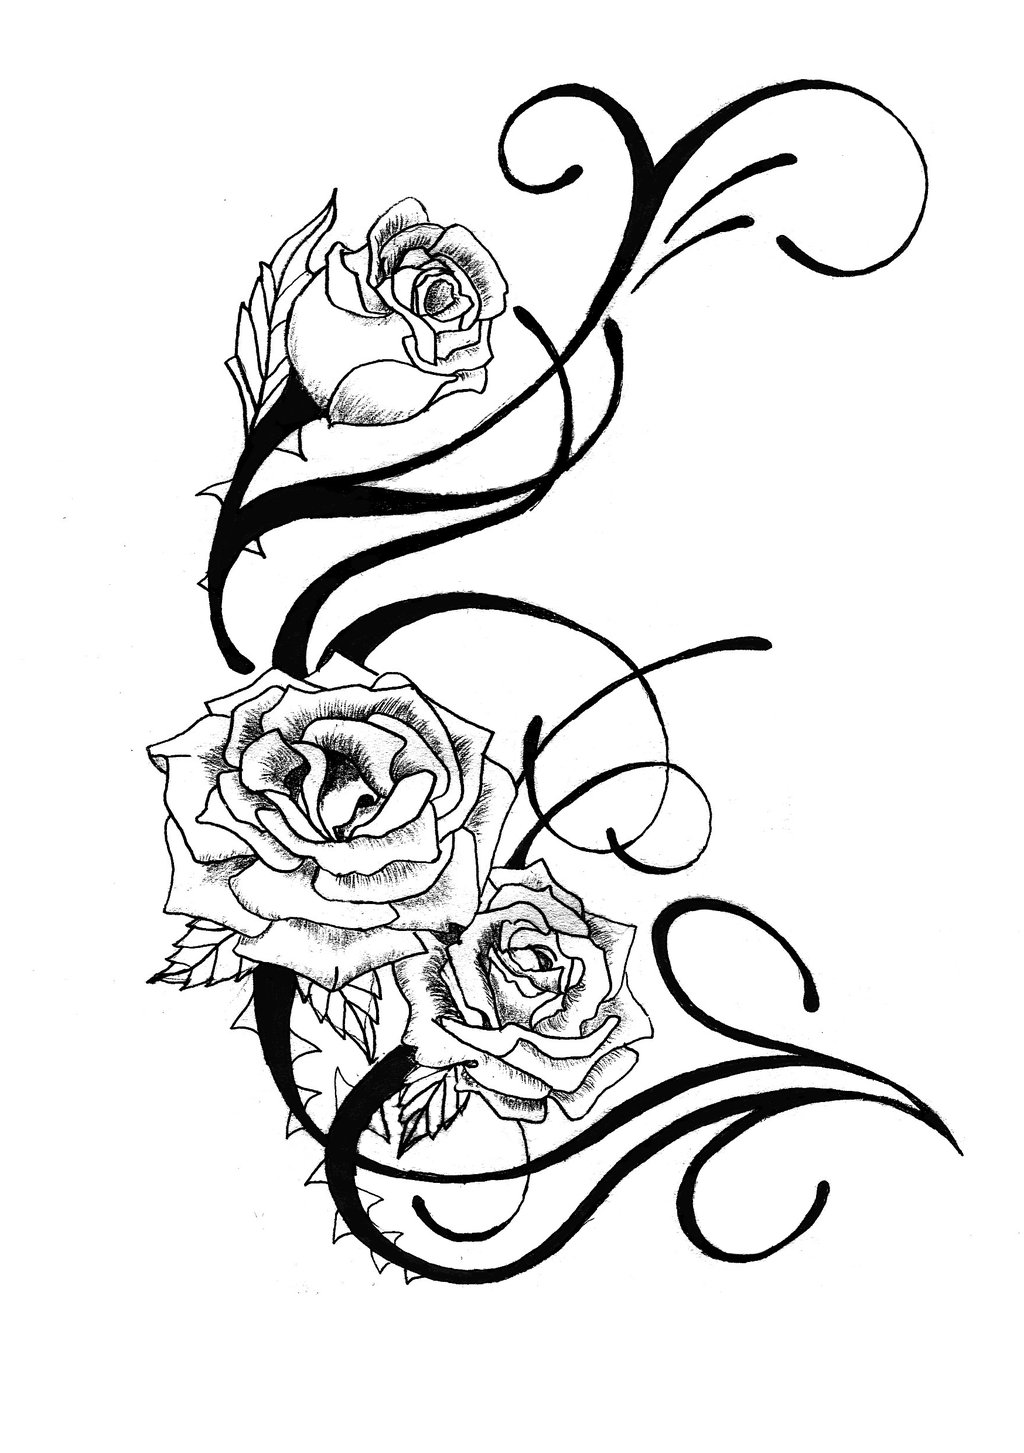 Rose Tattoo Drawing at GetDrawings.com | Free for personal use Rose ...